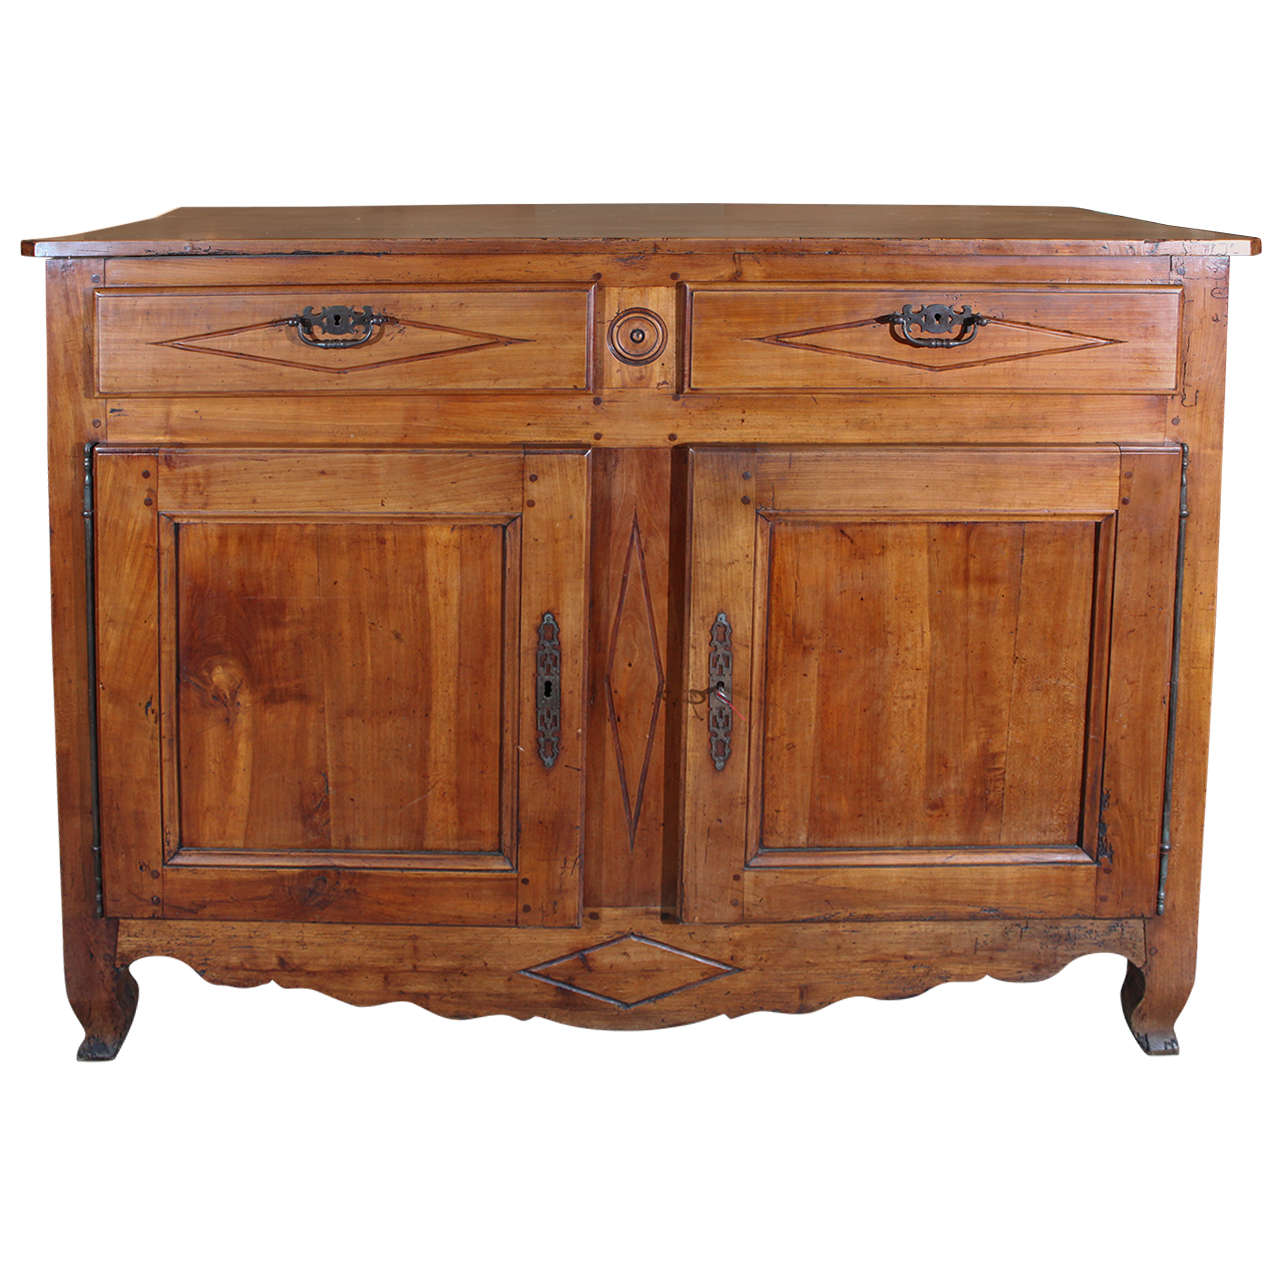 19th century french chest at 1stdibs for French furniture designers 20th century